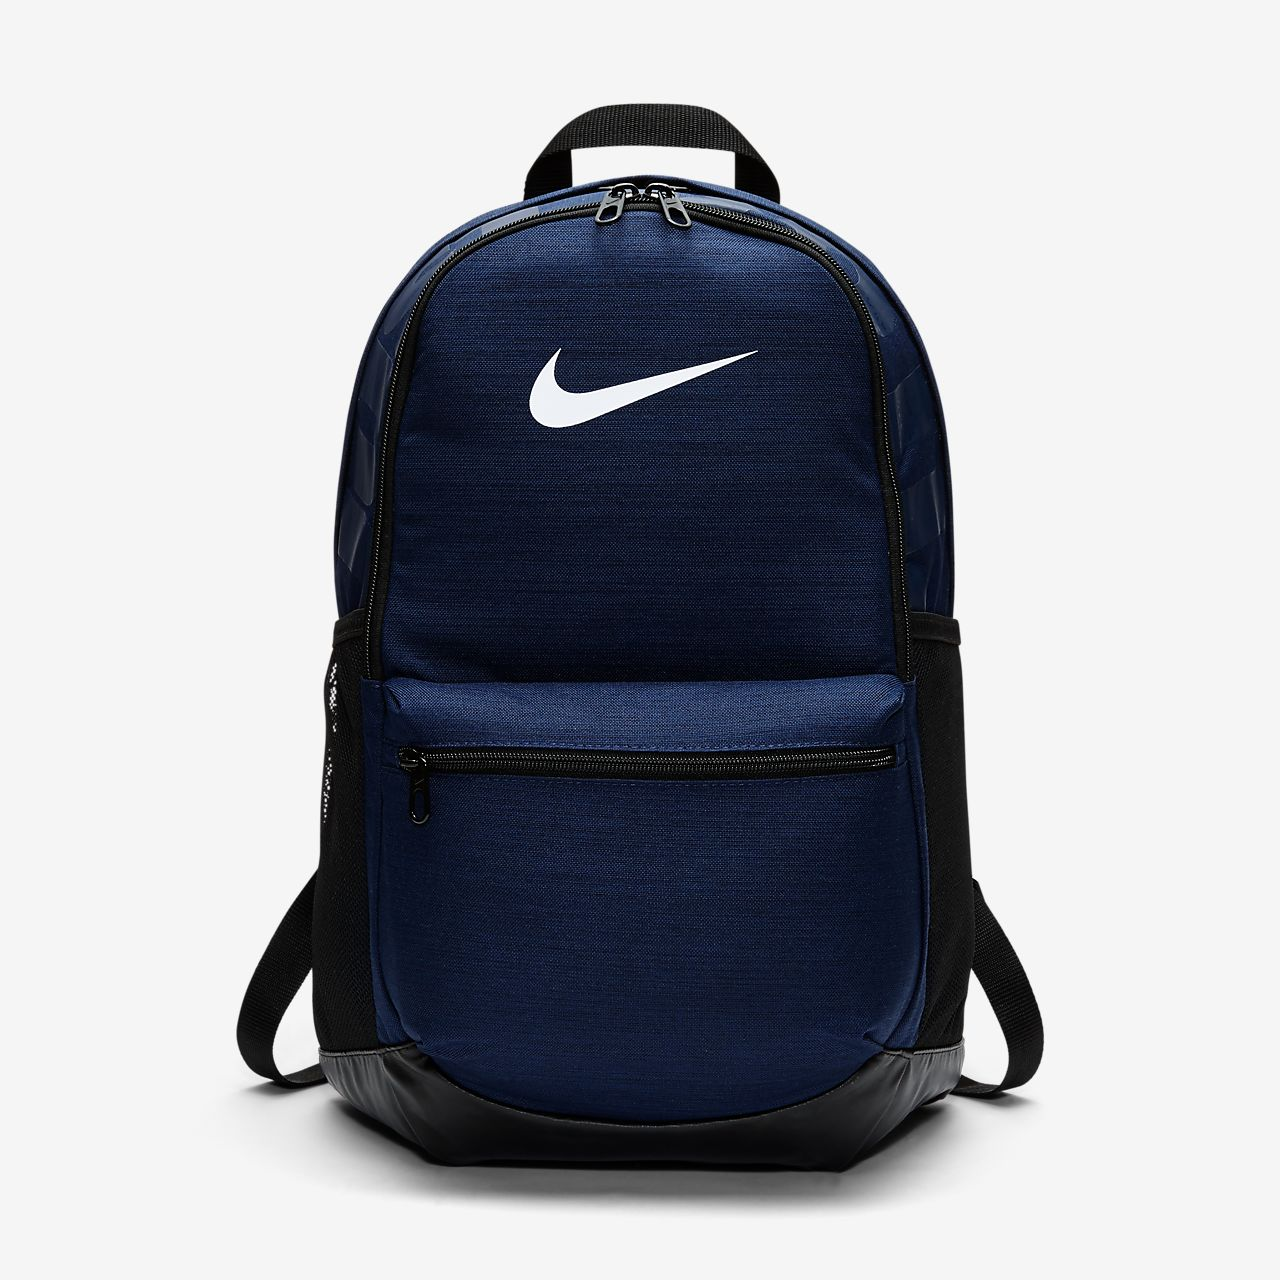 30ed521172b9 Nike Brasilia (Medium) Training Backpack. Nike.com AU